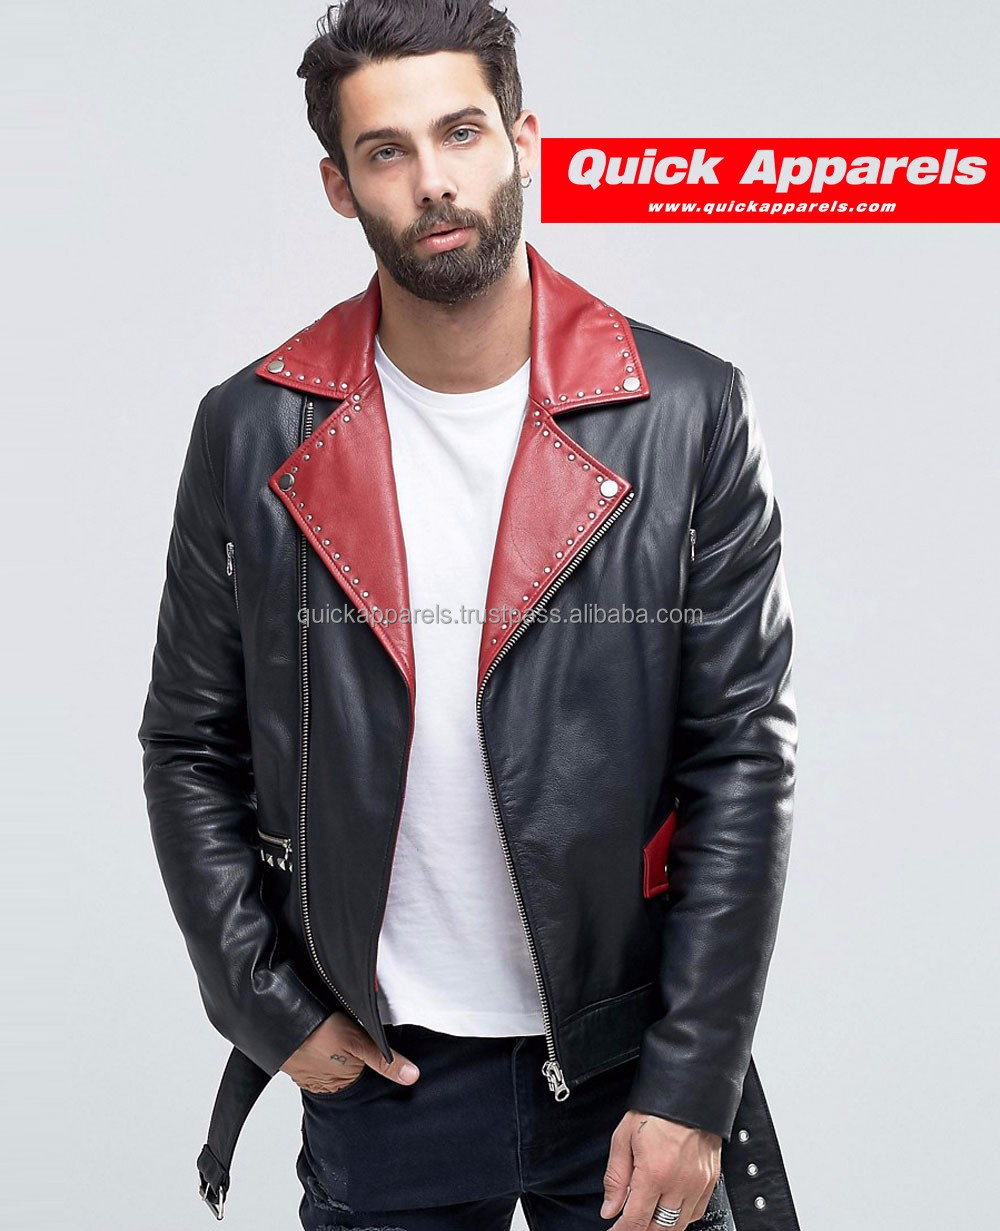 High Quality Men Leather Jacket Made In China, Custom Jacket Leather Men, Fancy